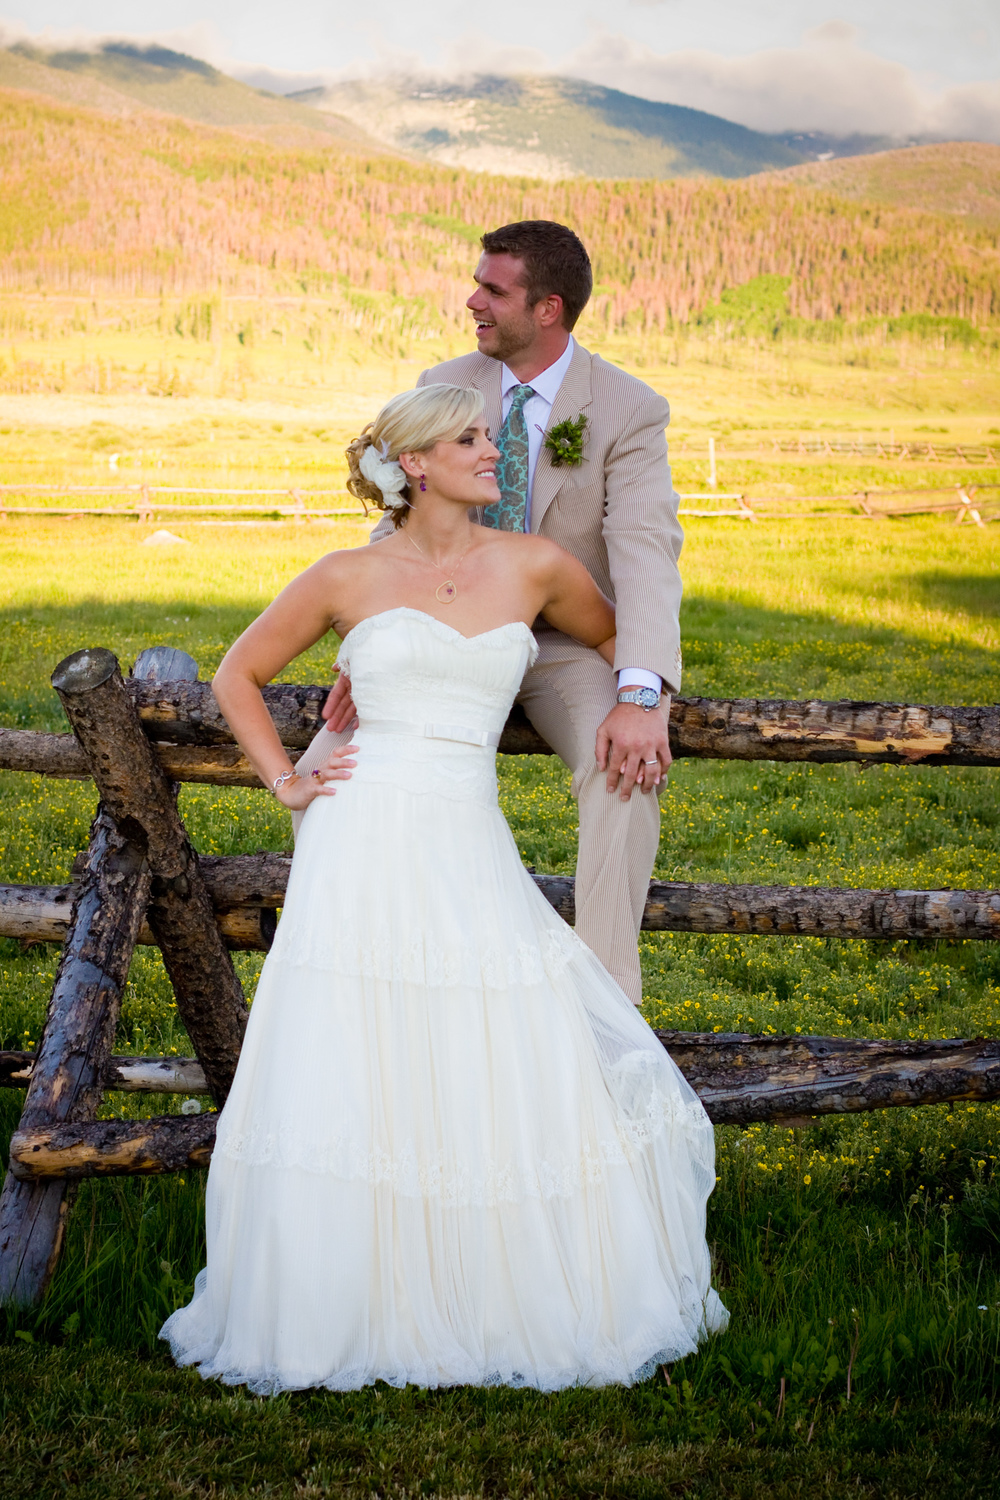 Devils_Thumb_Ranch_Wedding_047.JPG